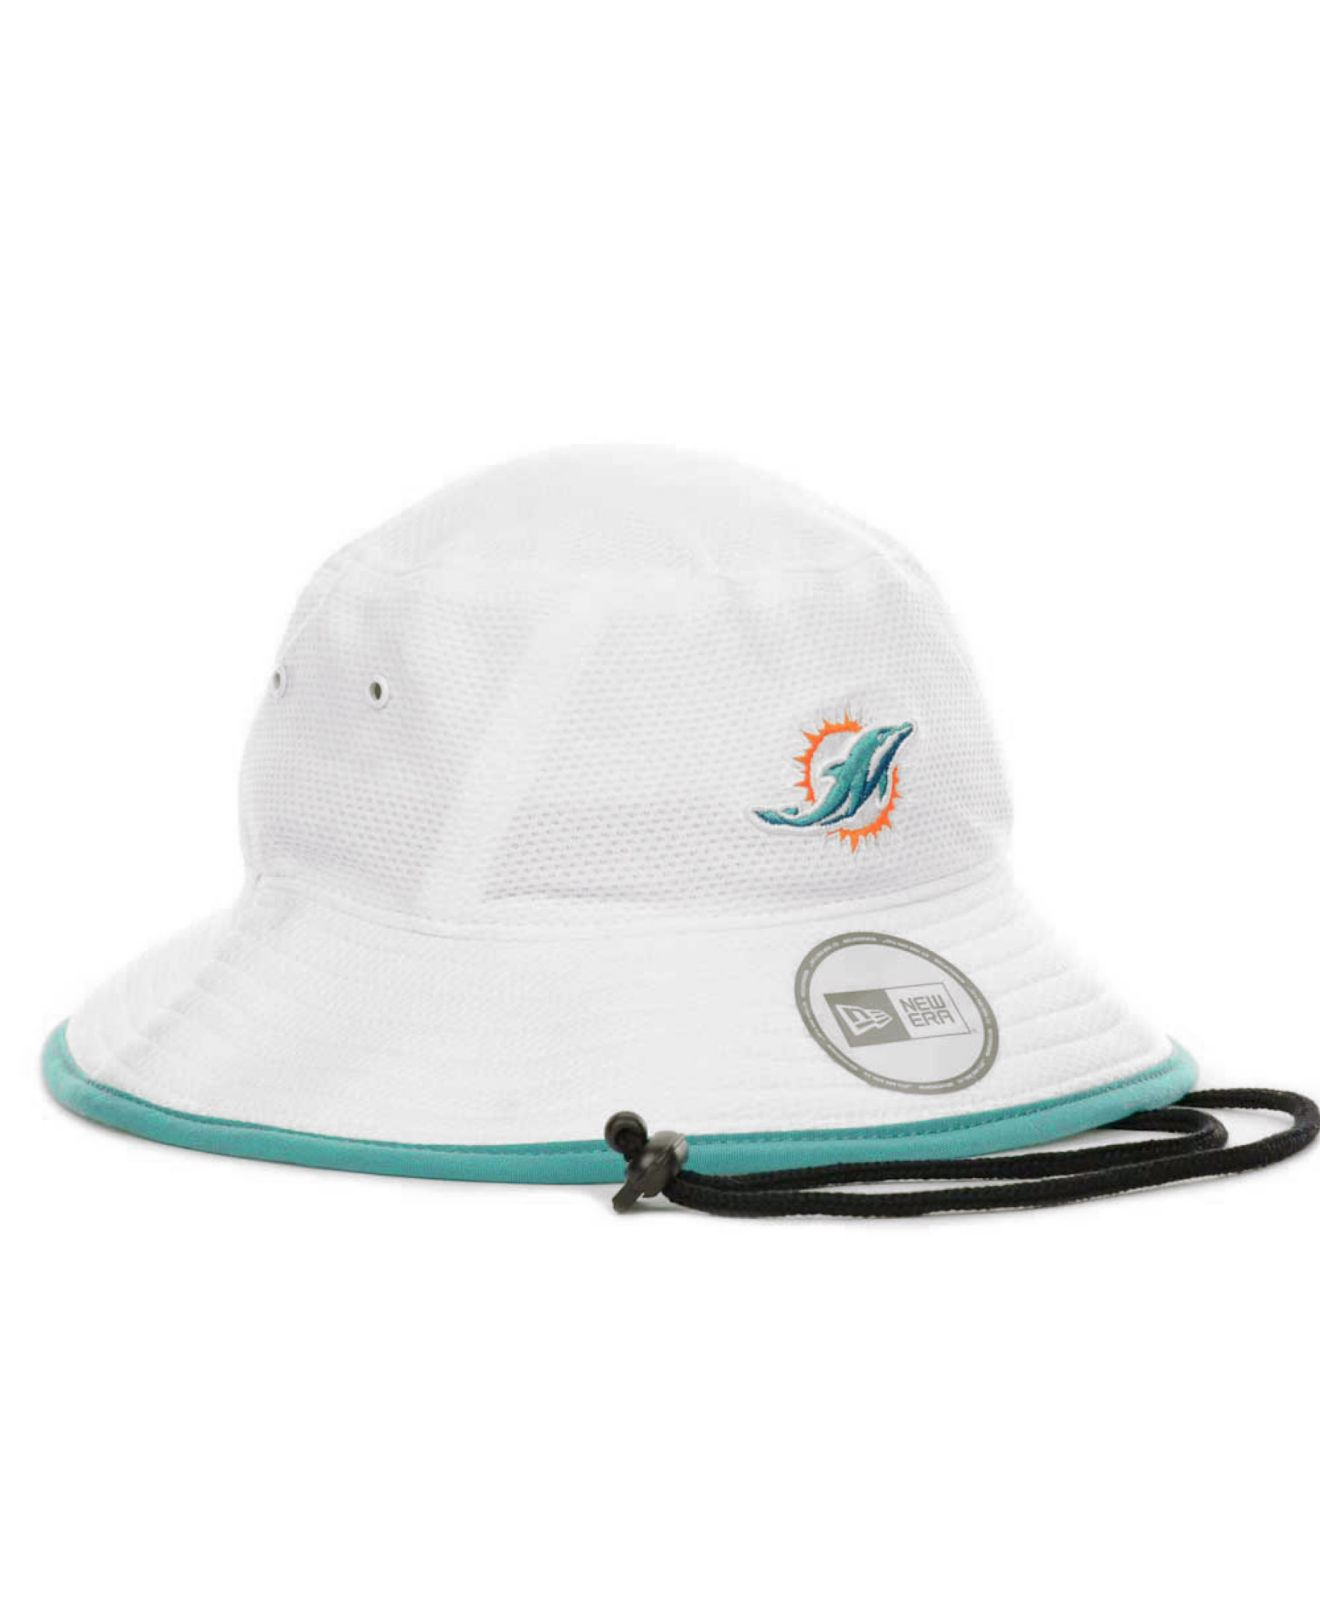 d0eff4c0a9c Lyst - KTZ Miami Dolphins Training Camp Bucket Hat in White